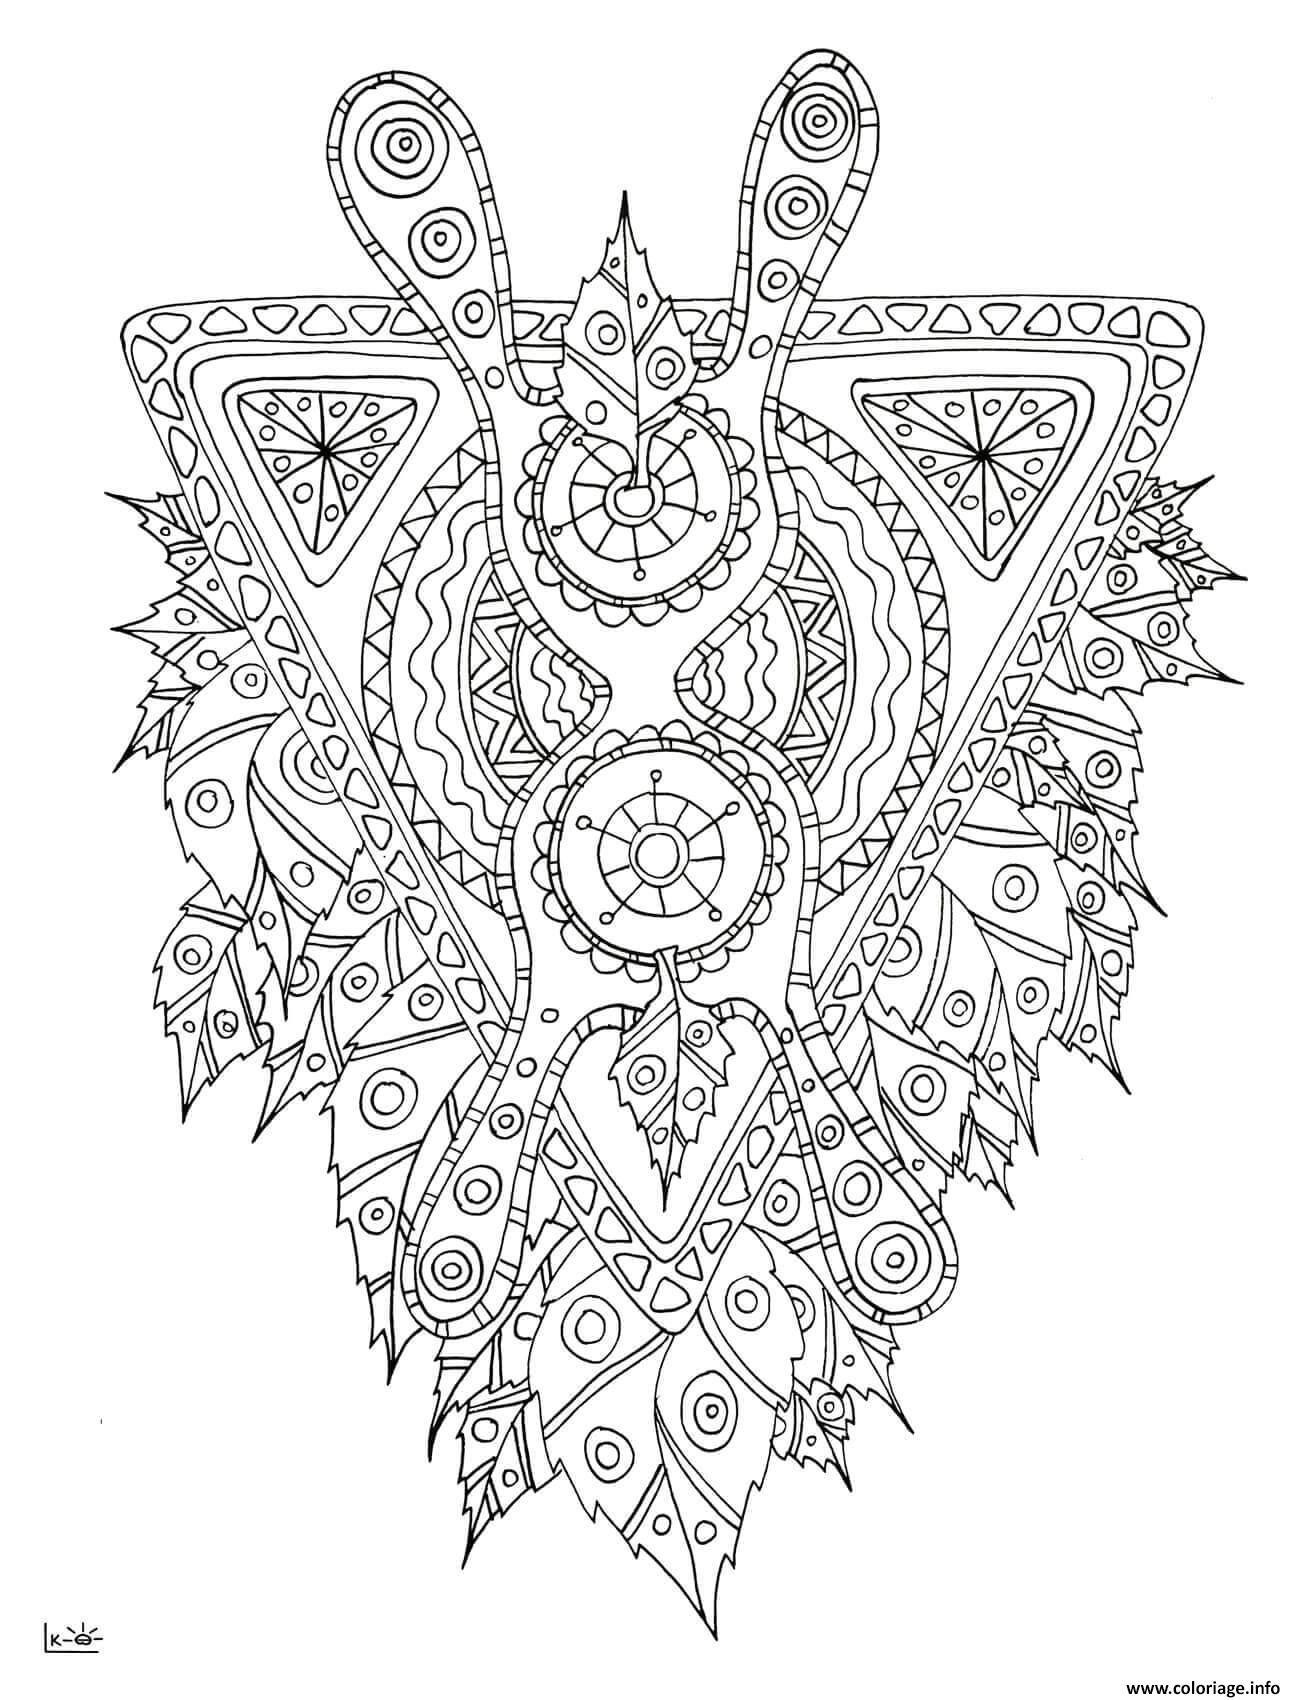 Coloriage Mythical Creature With Tribal Pattern Adulte Dessin à Imprimer